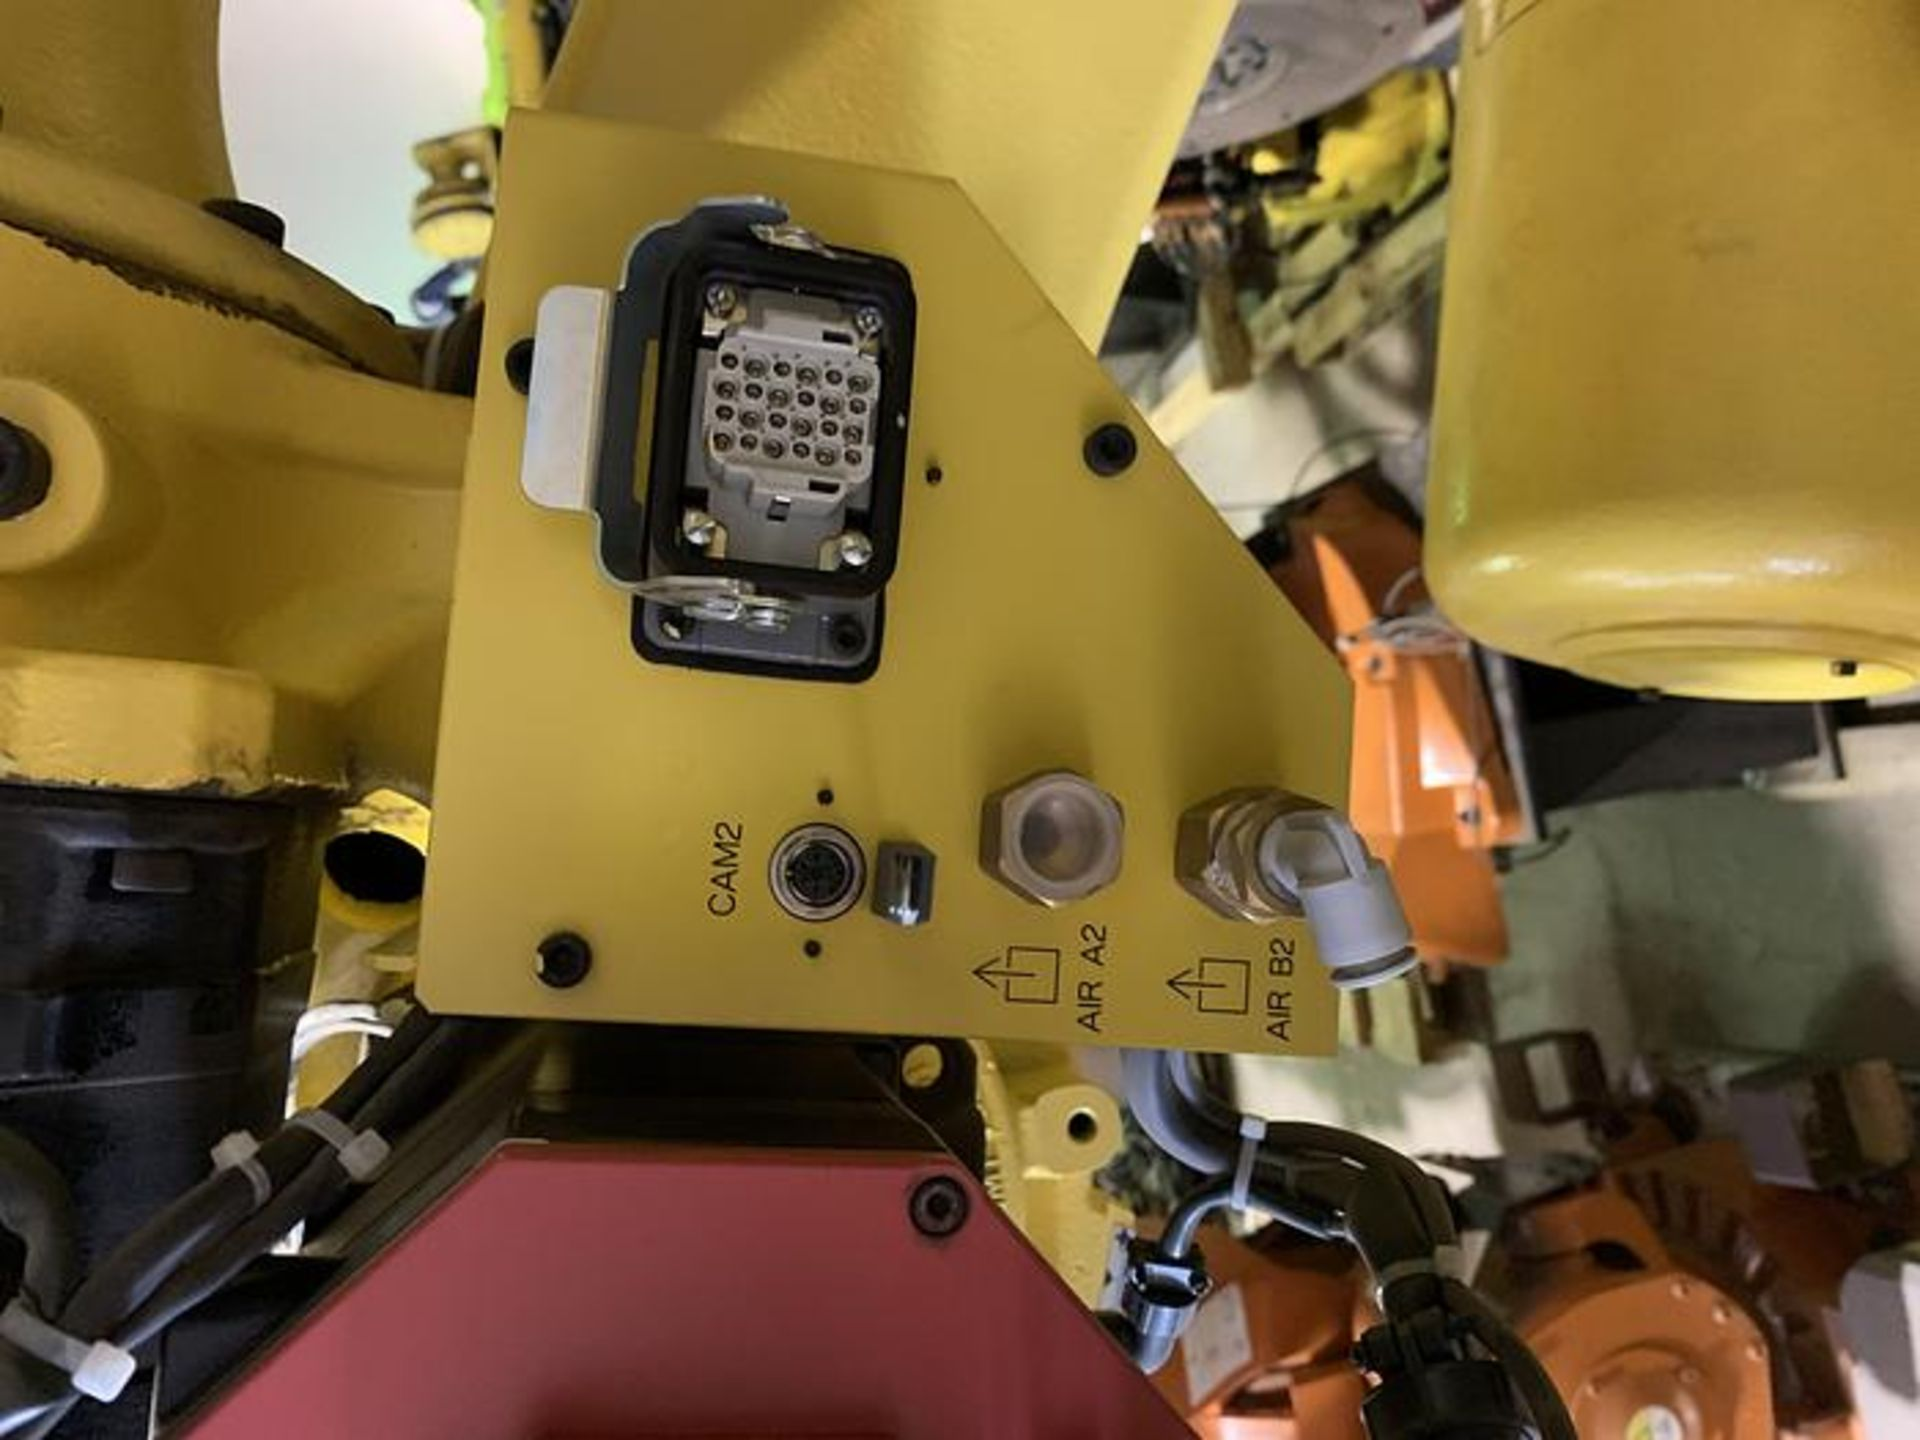 FANUC R2000iC/125L 6 AXIS CNC ROBOT WITH R30iB CONTROLLER, IR VISION, CABLES & REACH - Image 8 of 17